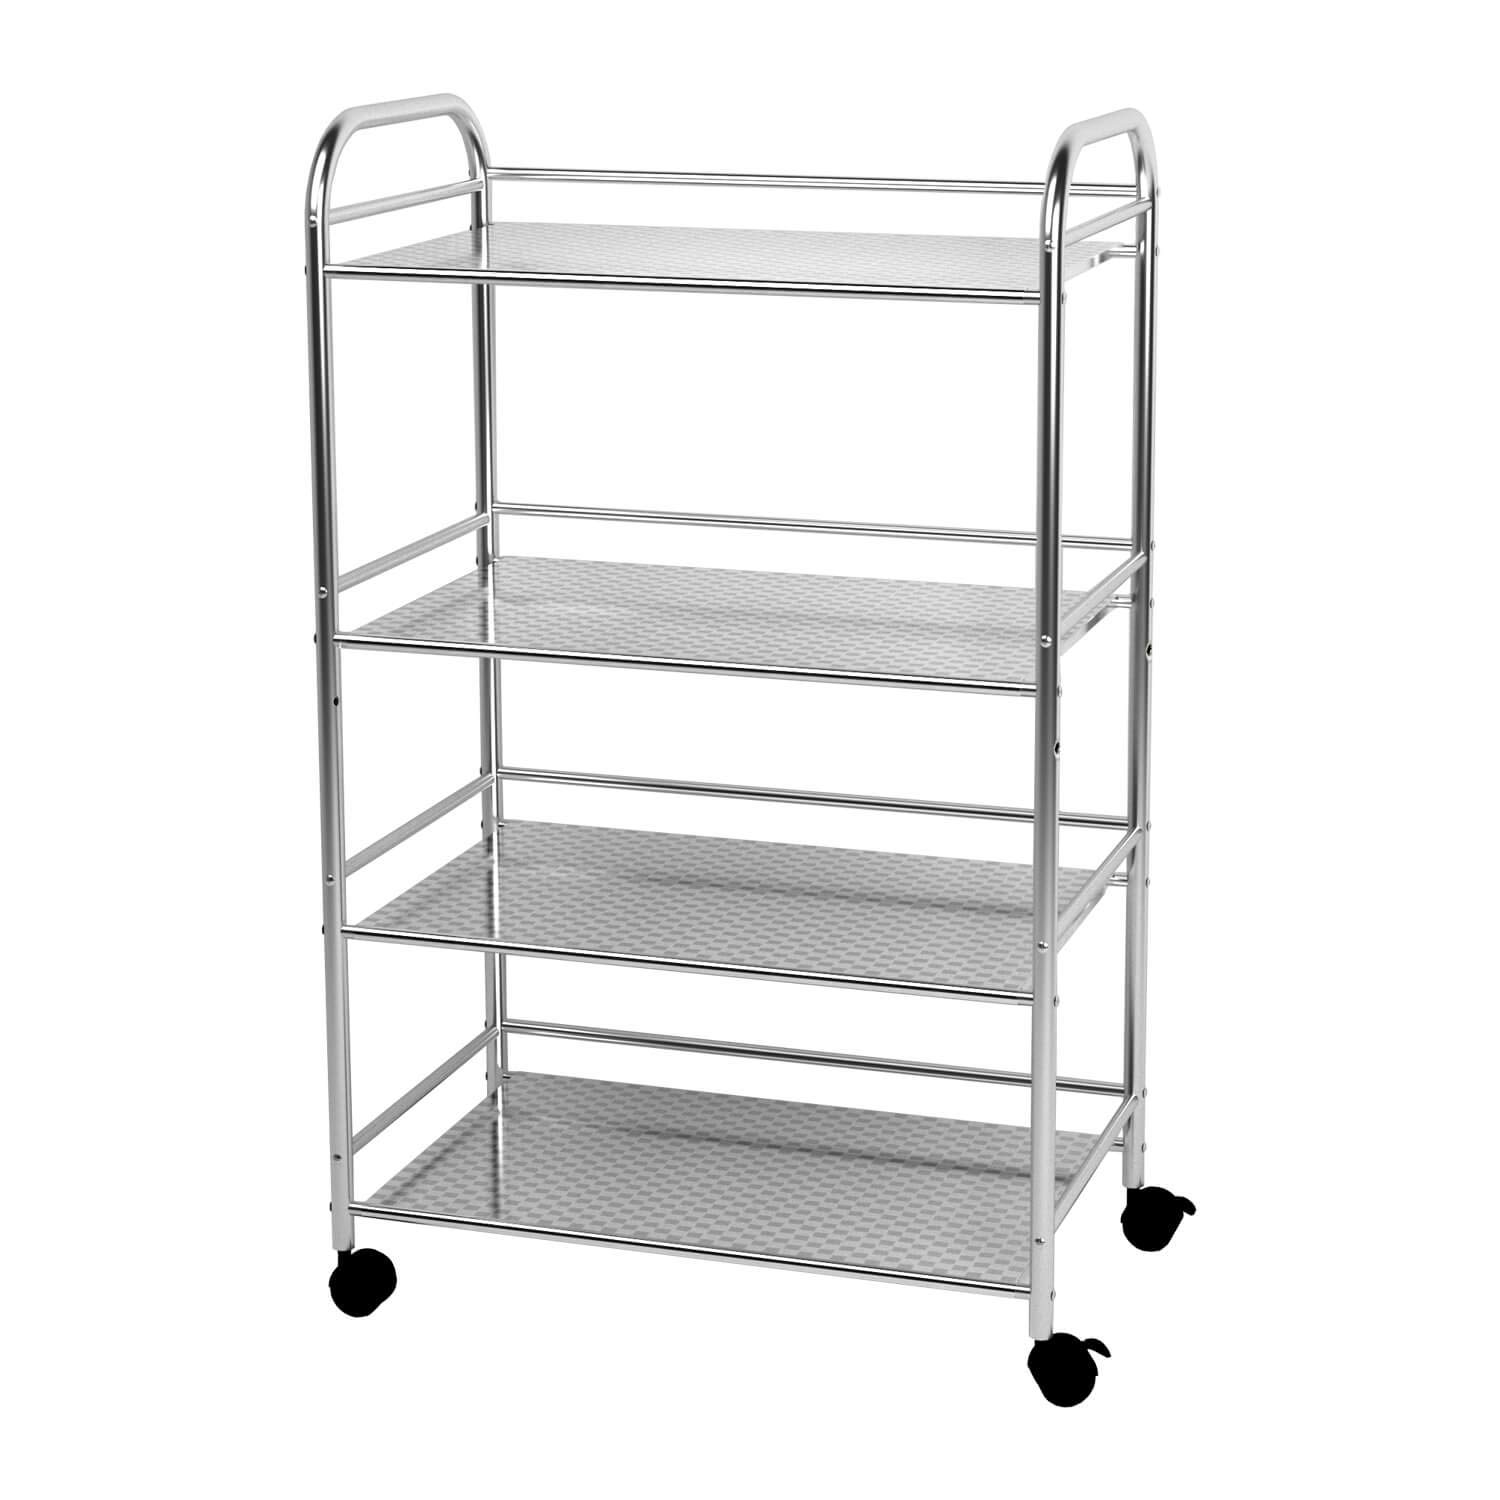 YKEASE 4-Shelf Kitchen Shelving Units Stainless Steel Durable Microwave Bakers Rack Bathroom Garage Storage Shelving on Wheels Size 23.6x13.8x39.4''(LxWxH)